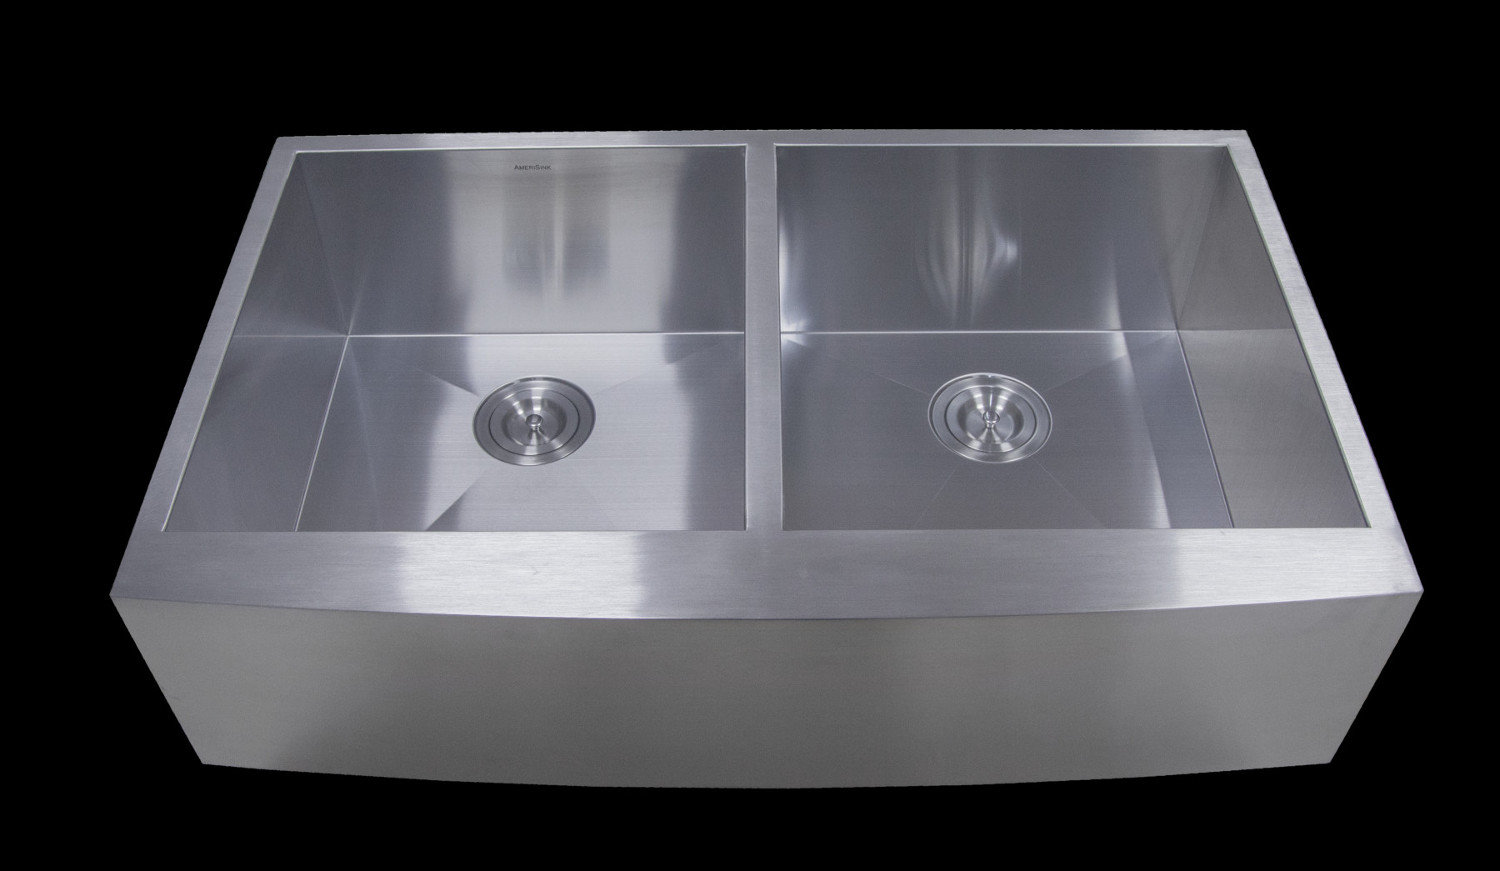 Double Bowl Apron Legend Stainless Steel Kitchen Sink